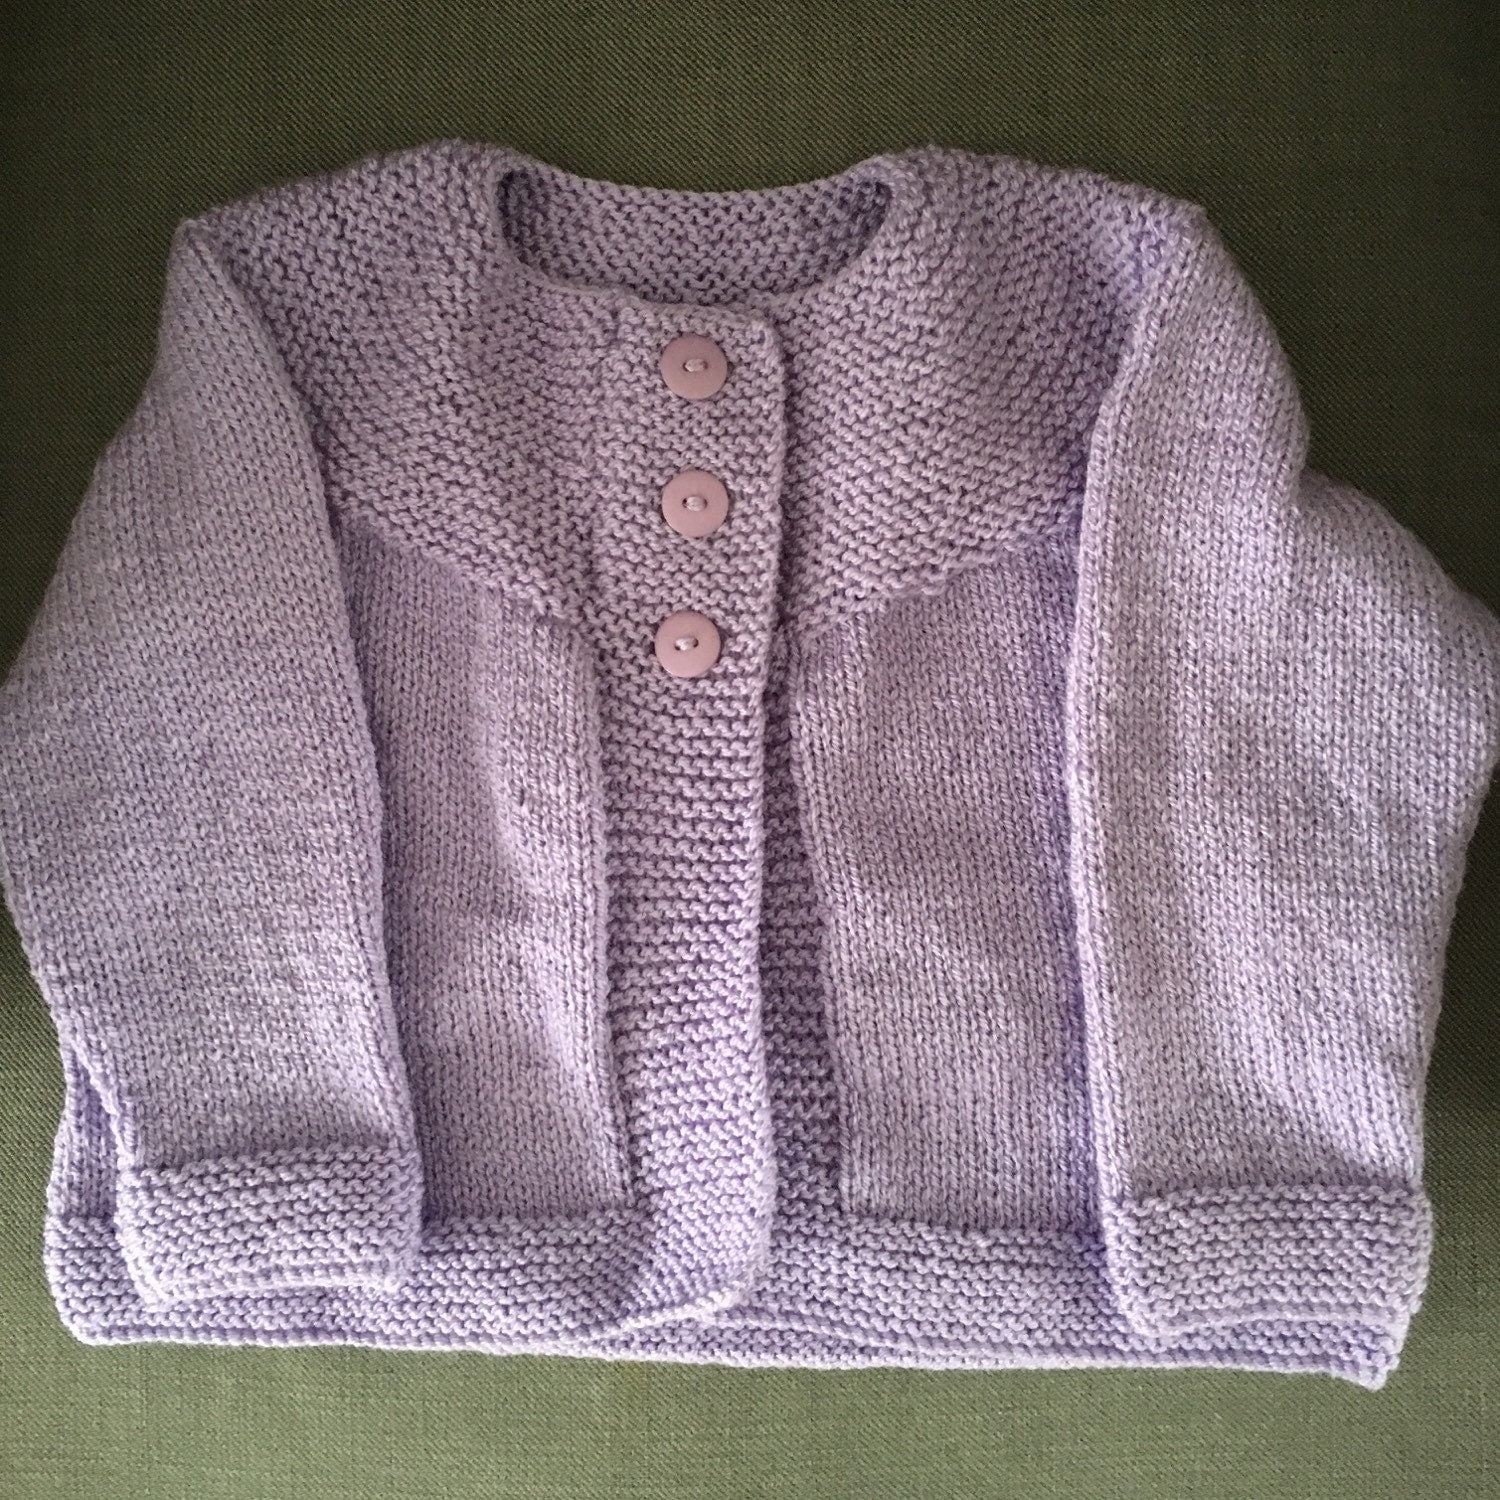 baby girls tops Baby Girls Cardigans Baby Girls Cardigans. Looking to layer up her looks? You've come to the right place. Mini girls purple chunky cable knit cardigan. Quick view. Add to wishlist. € Mini girls pink chunky cable knit cardigan. Quick view. Add to wishlist. € Mini girls blue fluffy ruffle neck jumper.